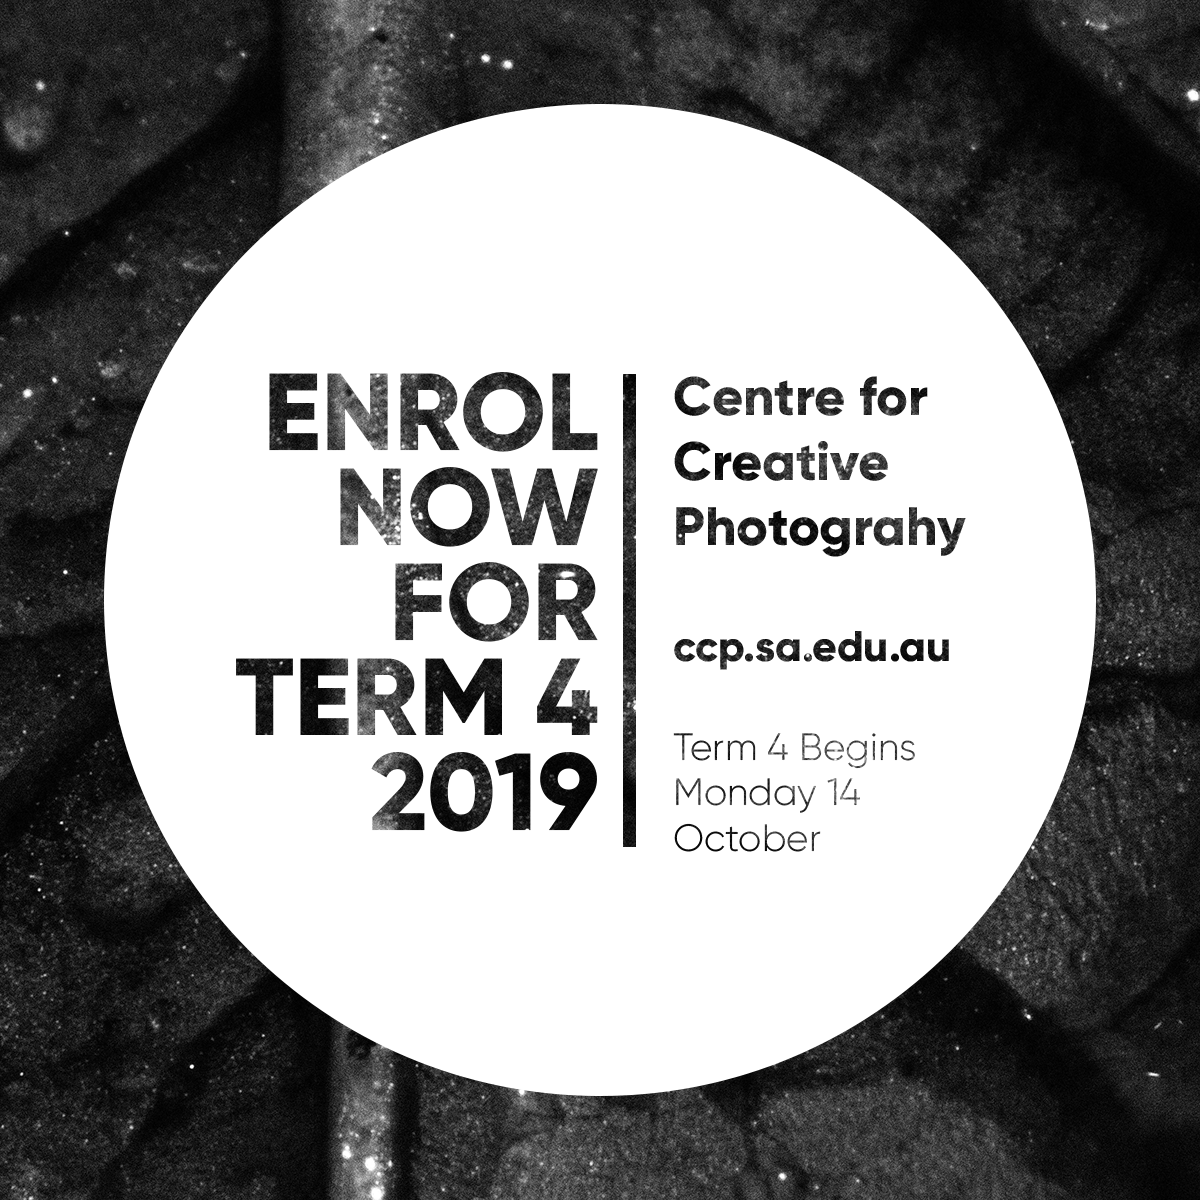 centre-for-creative-photography-enrol-for-term-4-2019